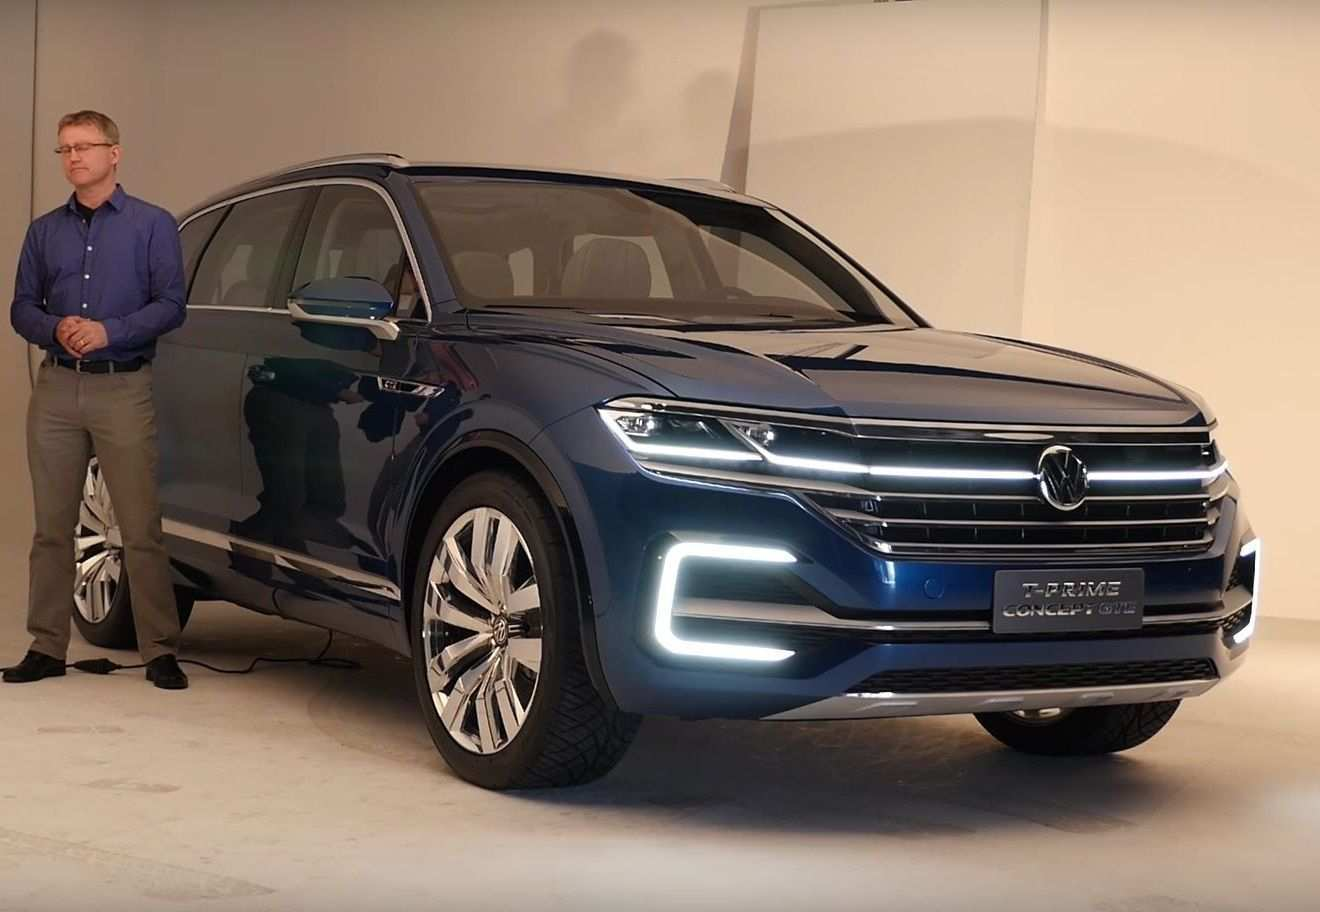 79 Gallery of VW Touareg 2020 Usa Price and Review for VW Touareg 2020 Usa